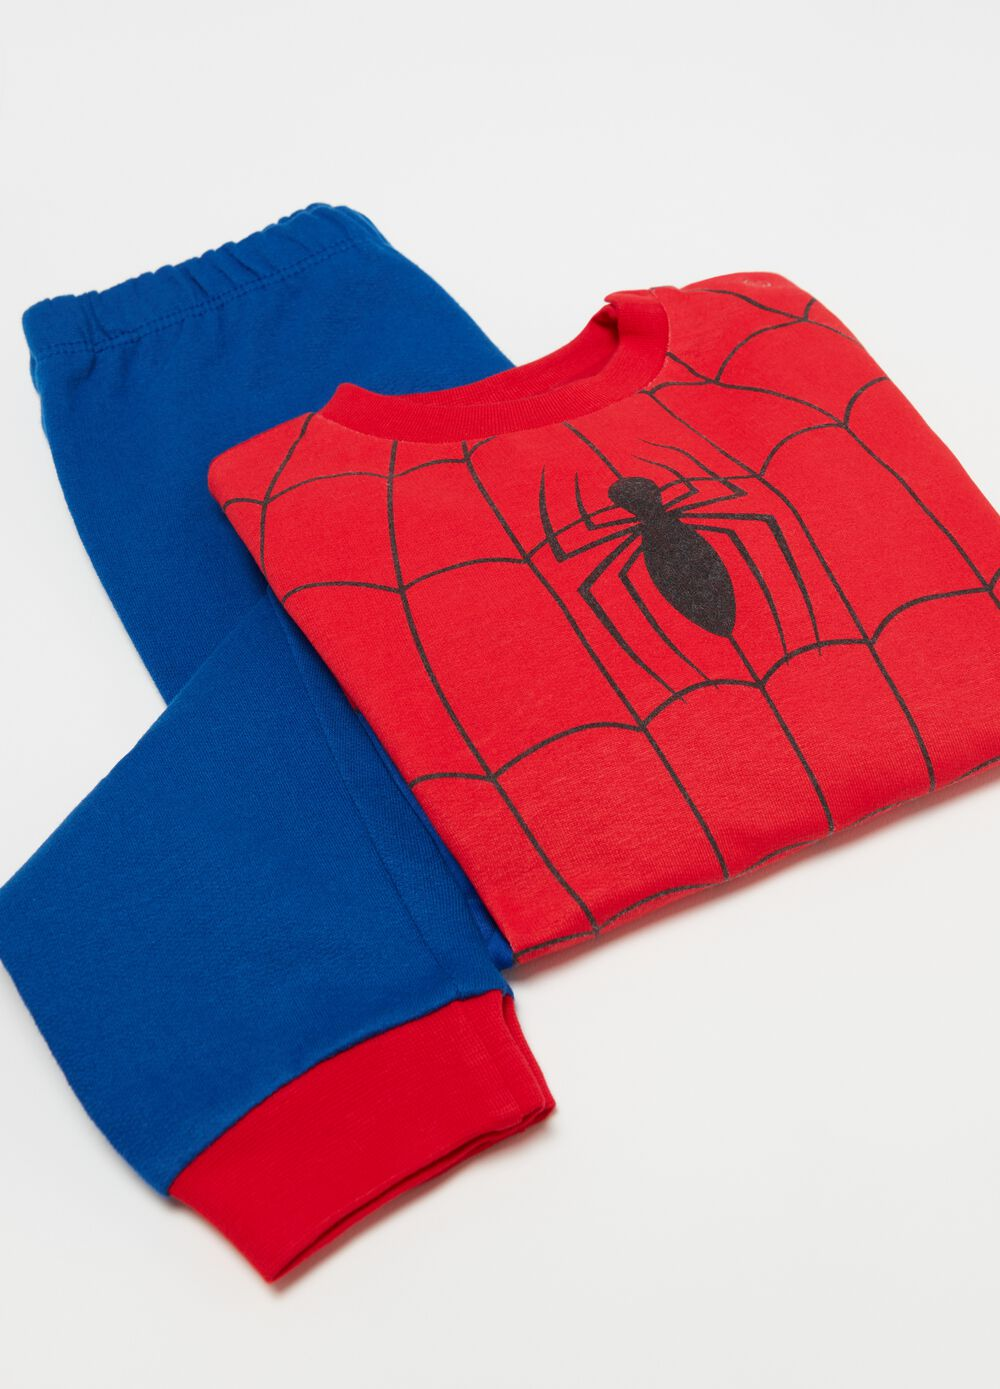 Pijama largo estampado Marvel Spider-Man